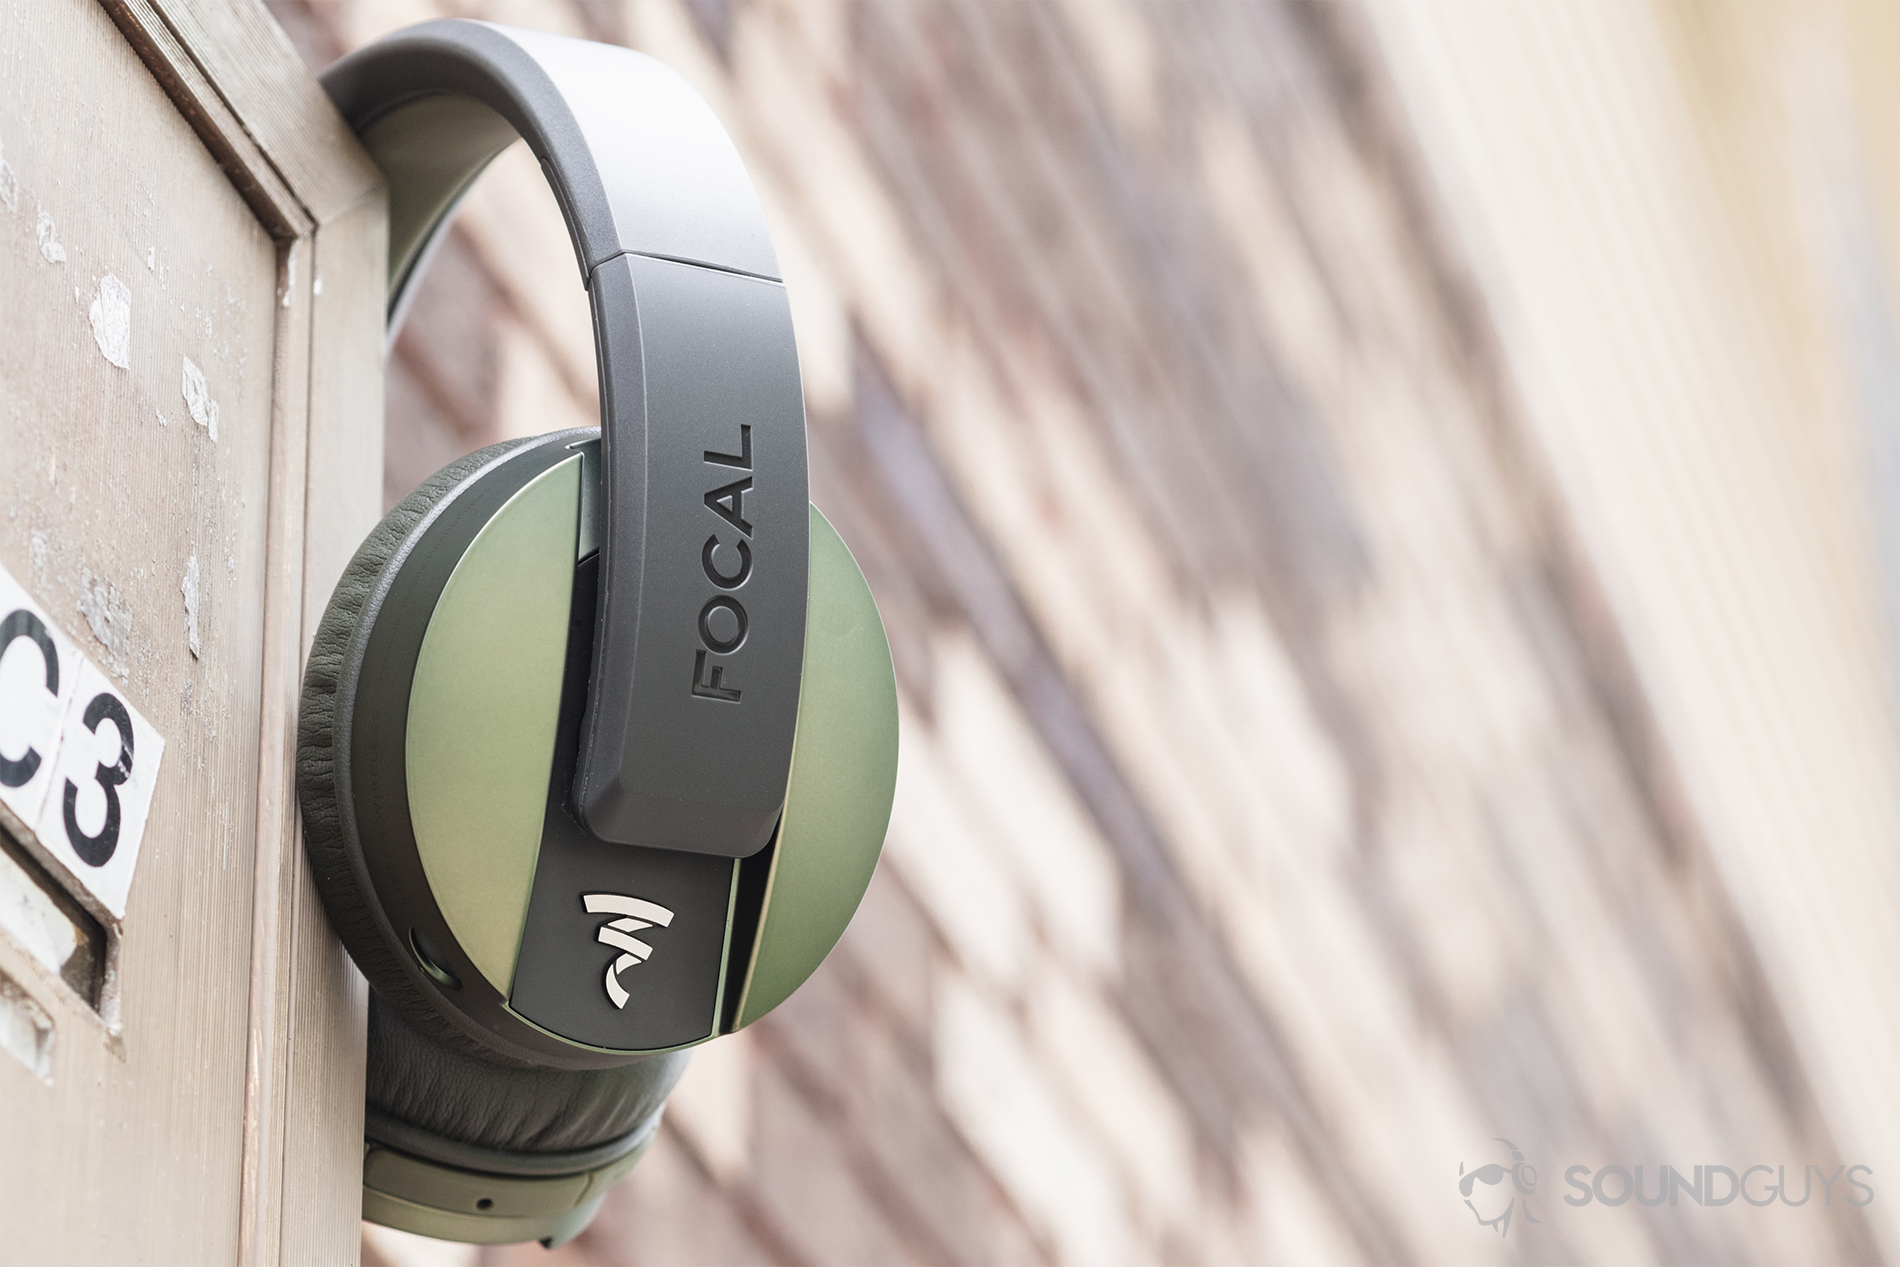 2d84f982e76 Focal Listen Wireless review: The headphones resting on an apartment  mailbox against an out-